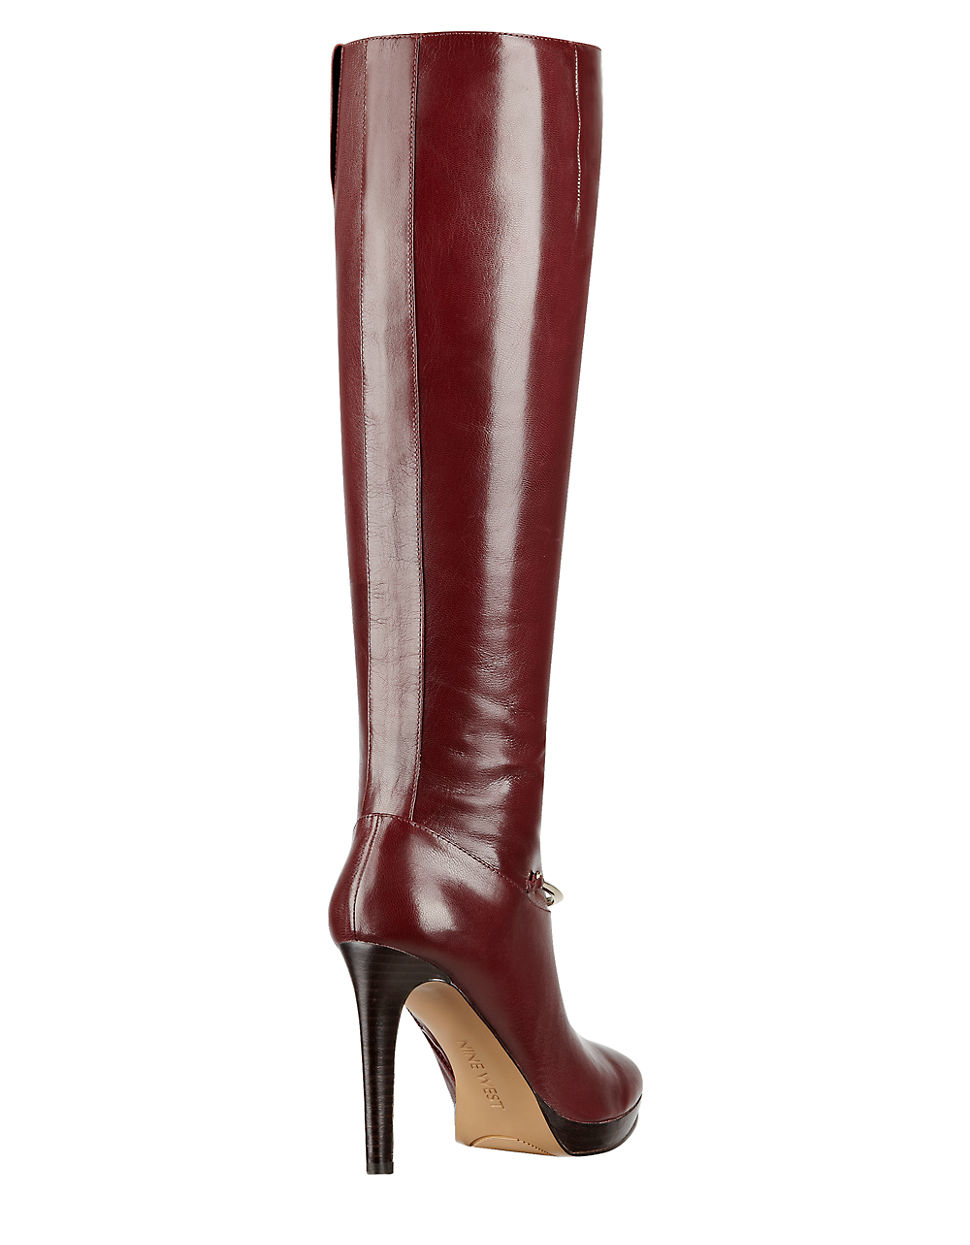 70ee367e4e2 Nine West Red Leather Boots Best Picture Of Boot Imageco. Fame Knee High  Boots